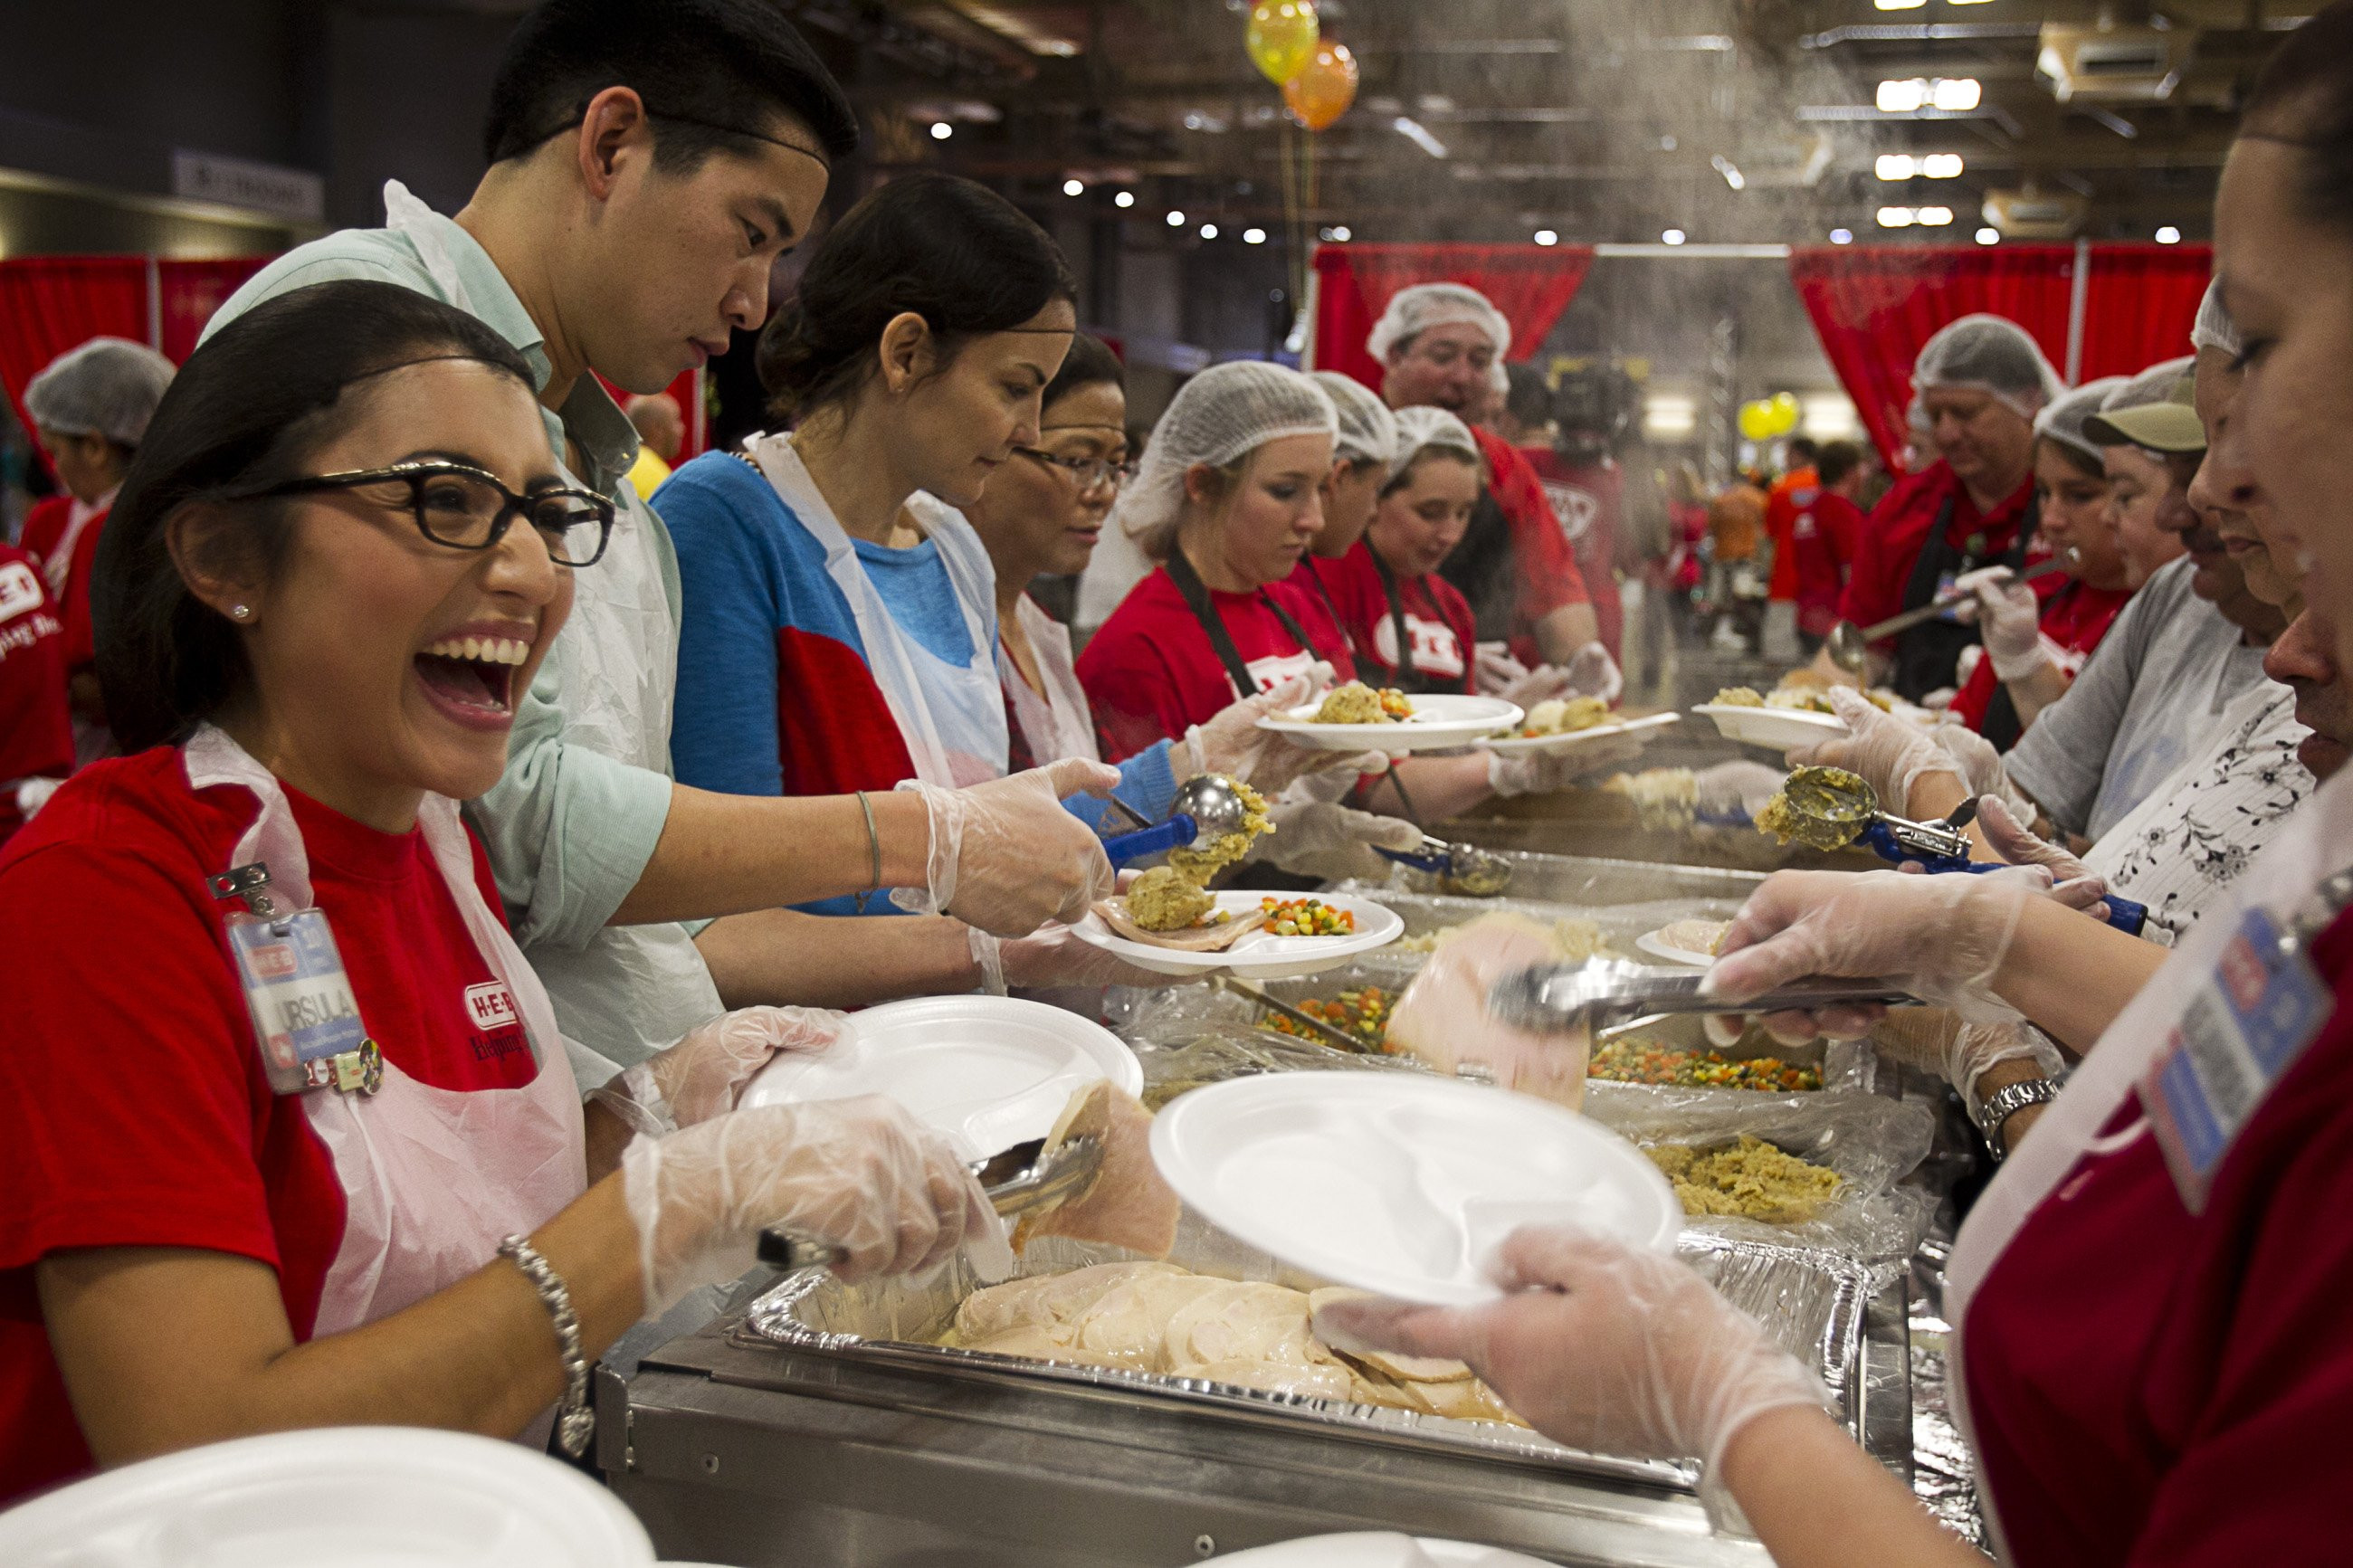 Heb Thanksgiving Dinner  H E B Feast of Sharing Wel es All This Sunday